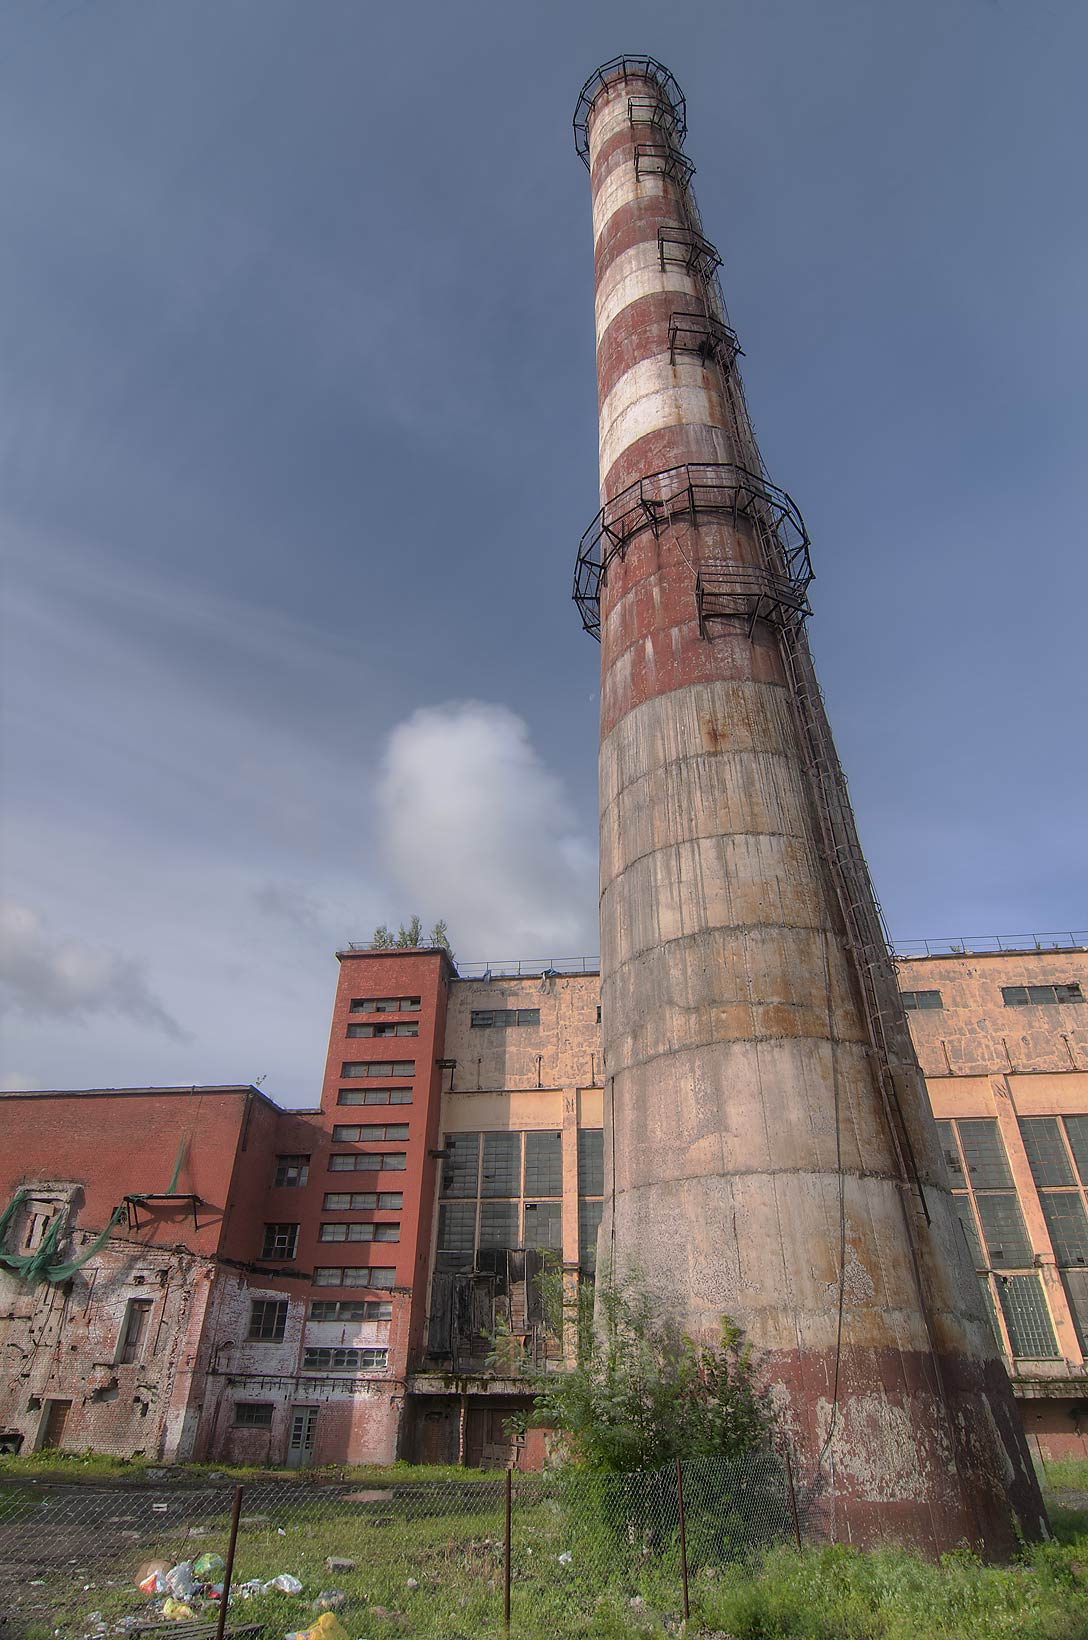 Smokestack of Red Banner (Krasnoe Znamia) Textile...neighborhood. St.Petersburg, Russia